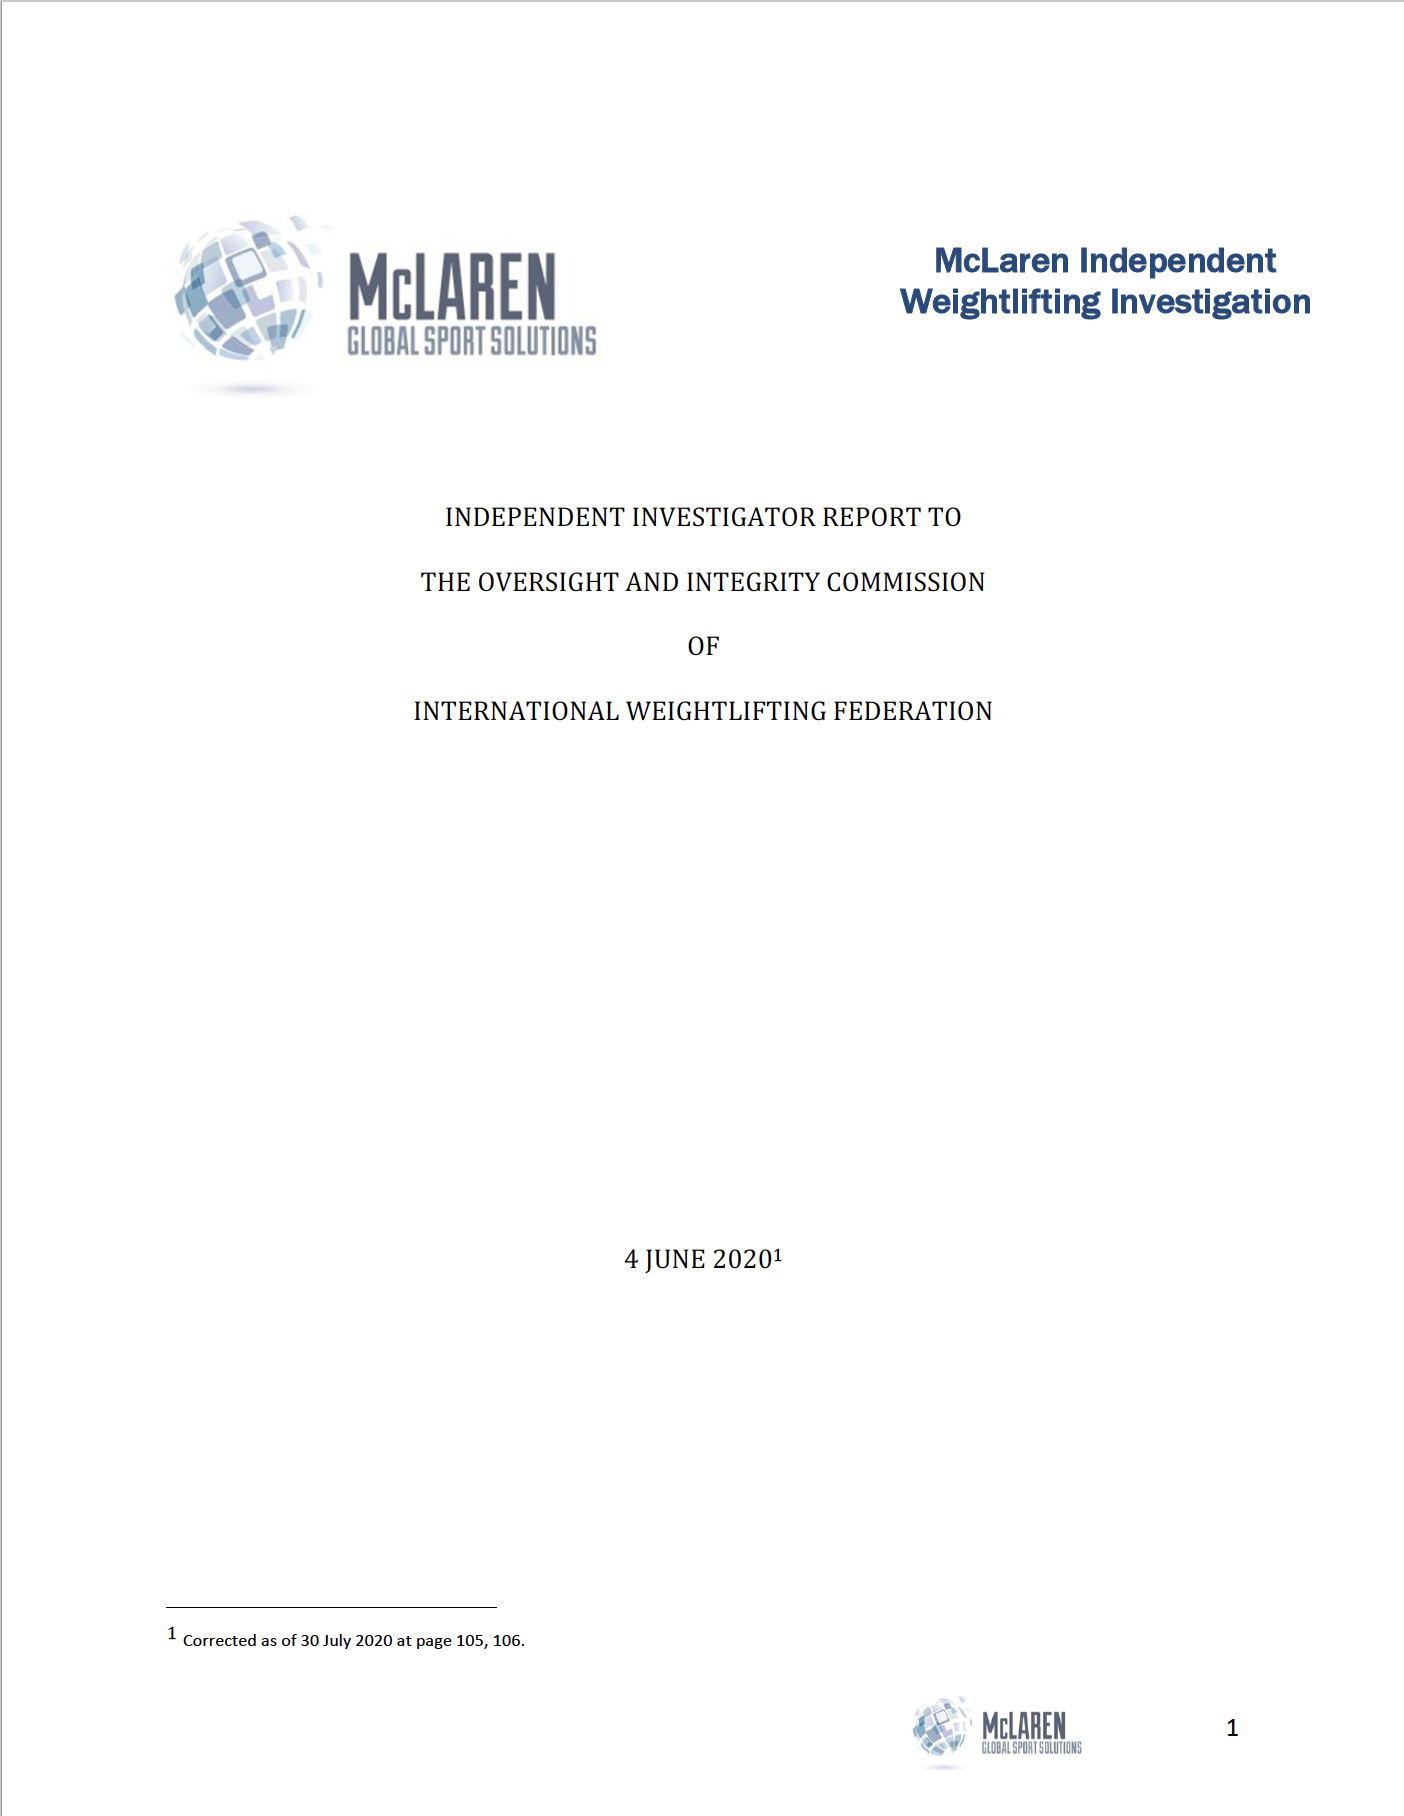 McLaren: Independent investigator report to the oversight and integrity commission of the International Weightlifting Federation